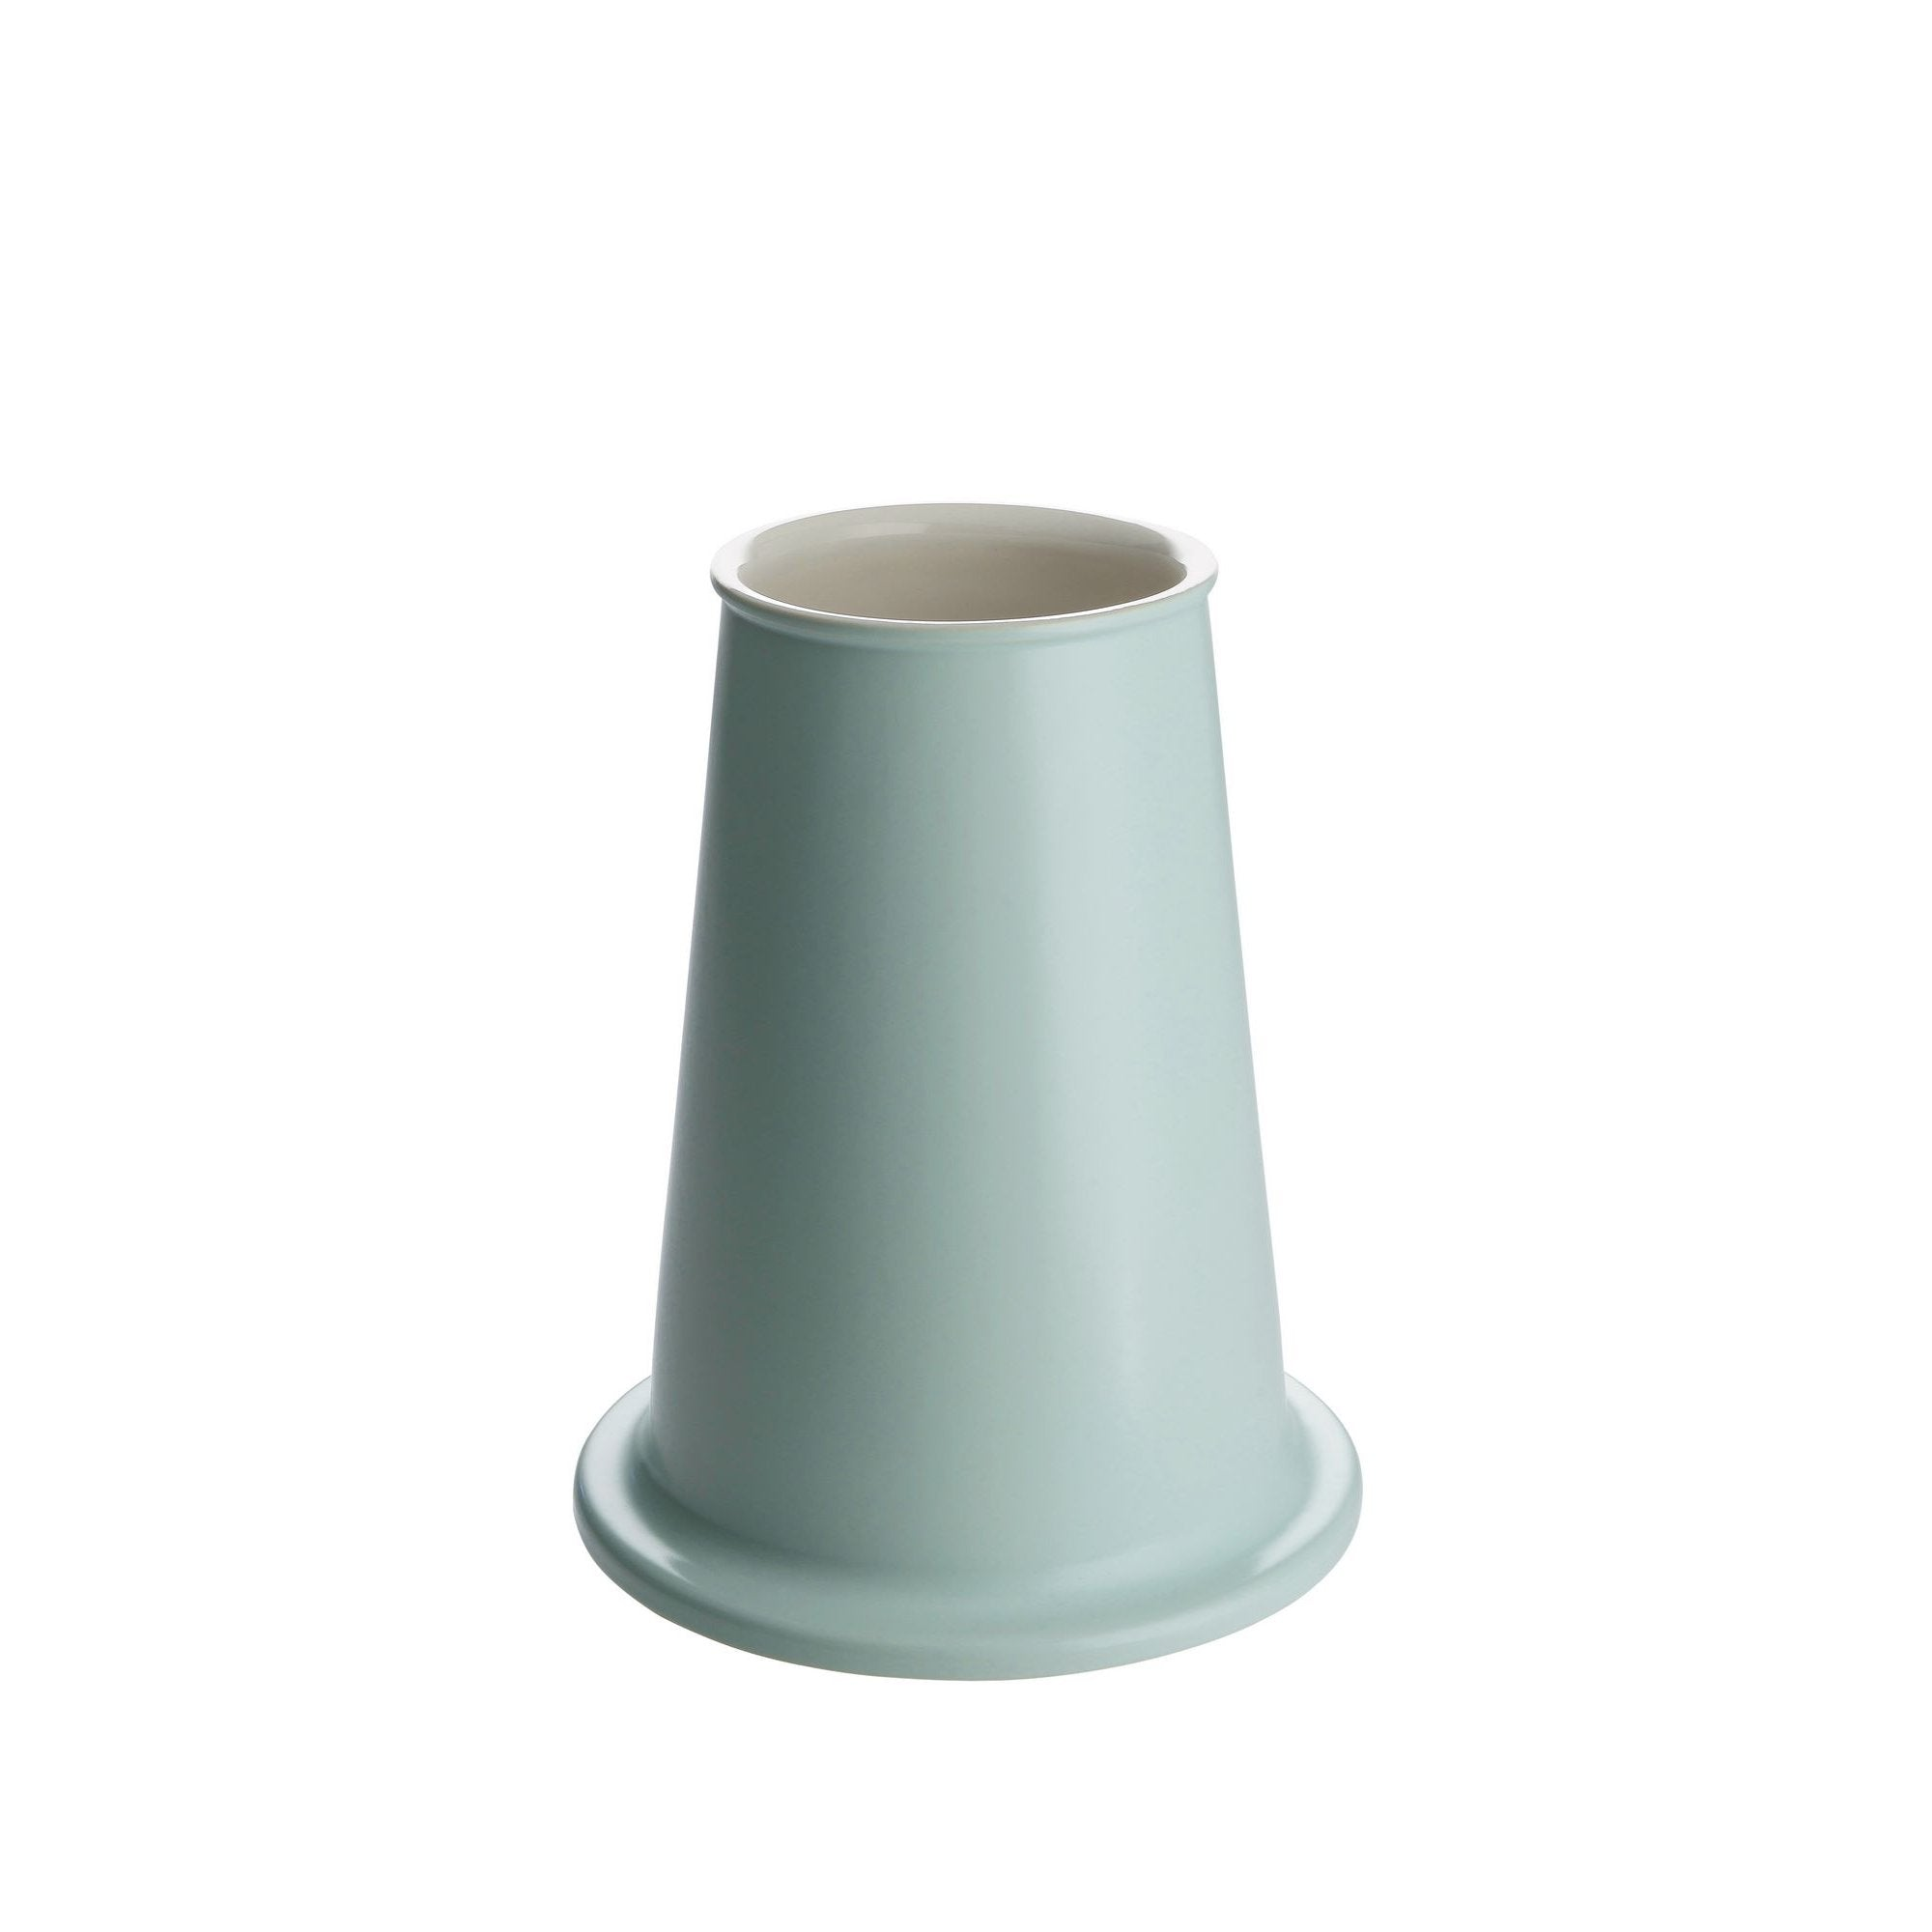 FLOWER VASE - TONALE - PALE GREEN